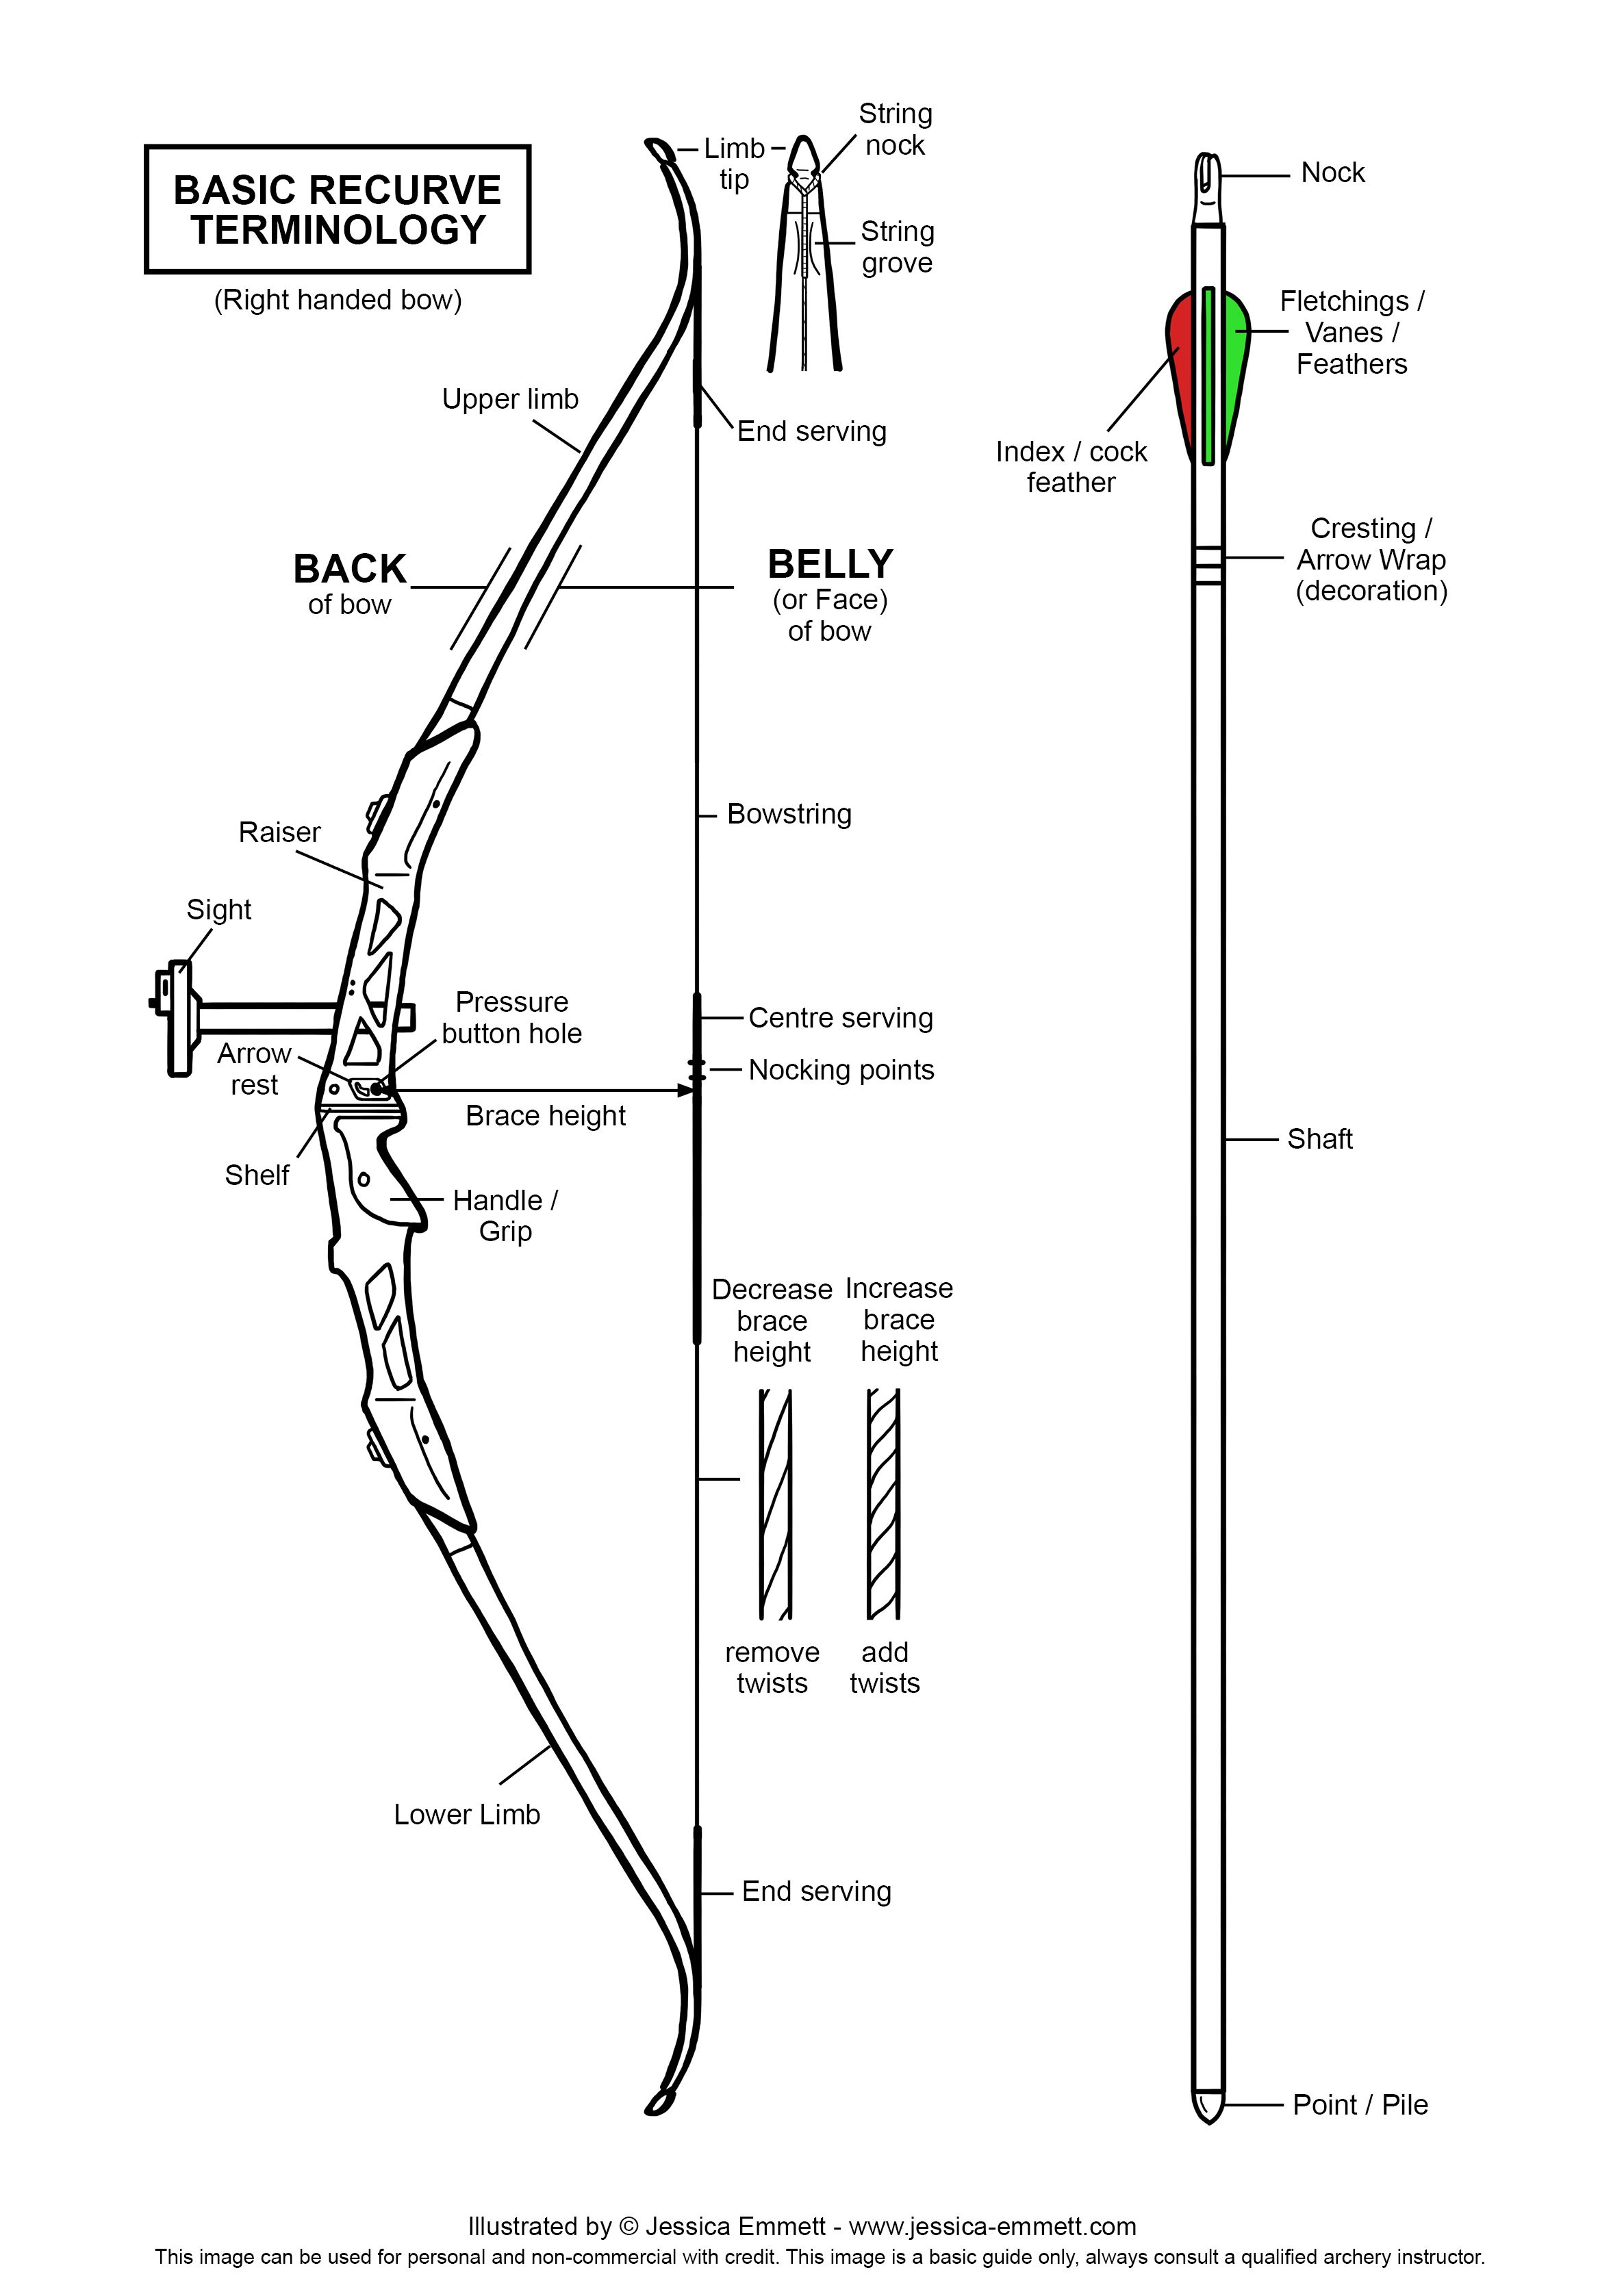 Basic Recurve Terminology Diagram 2 372 3 354 Pixels